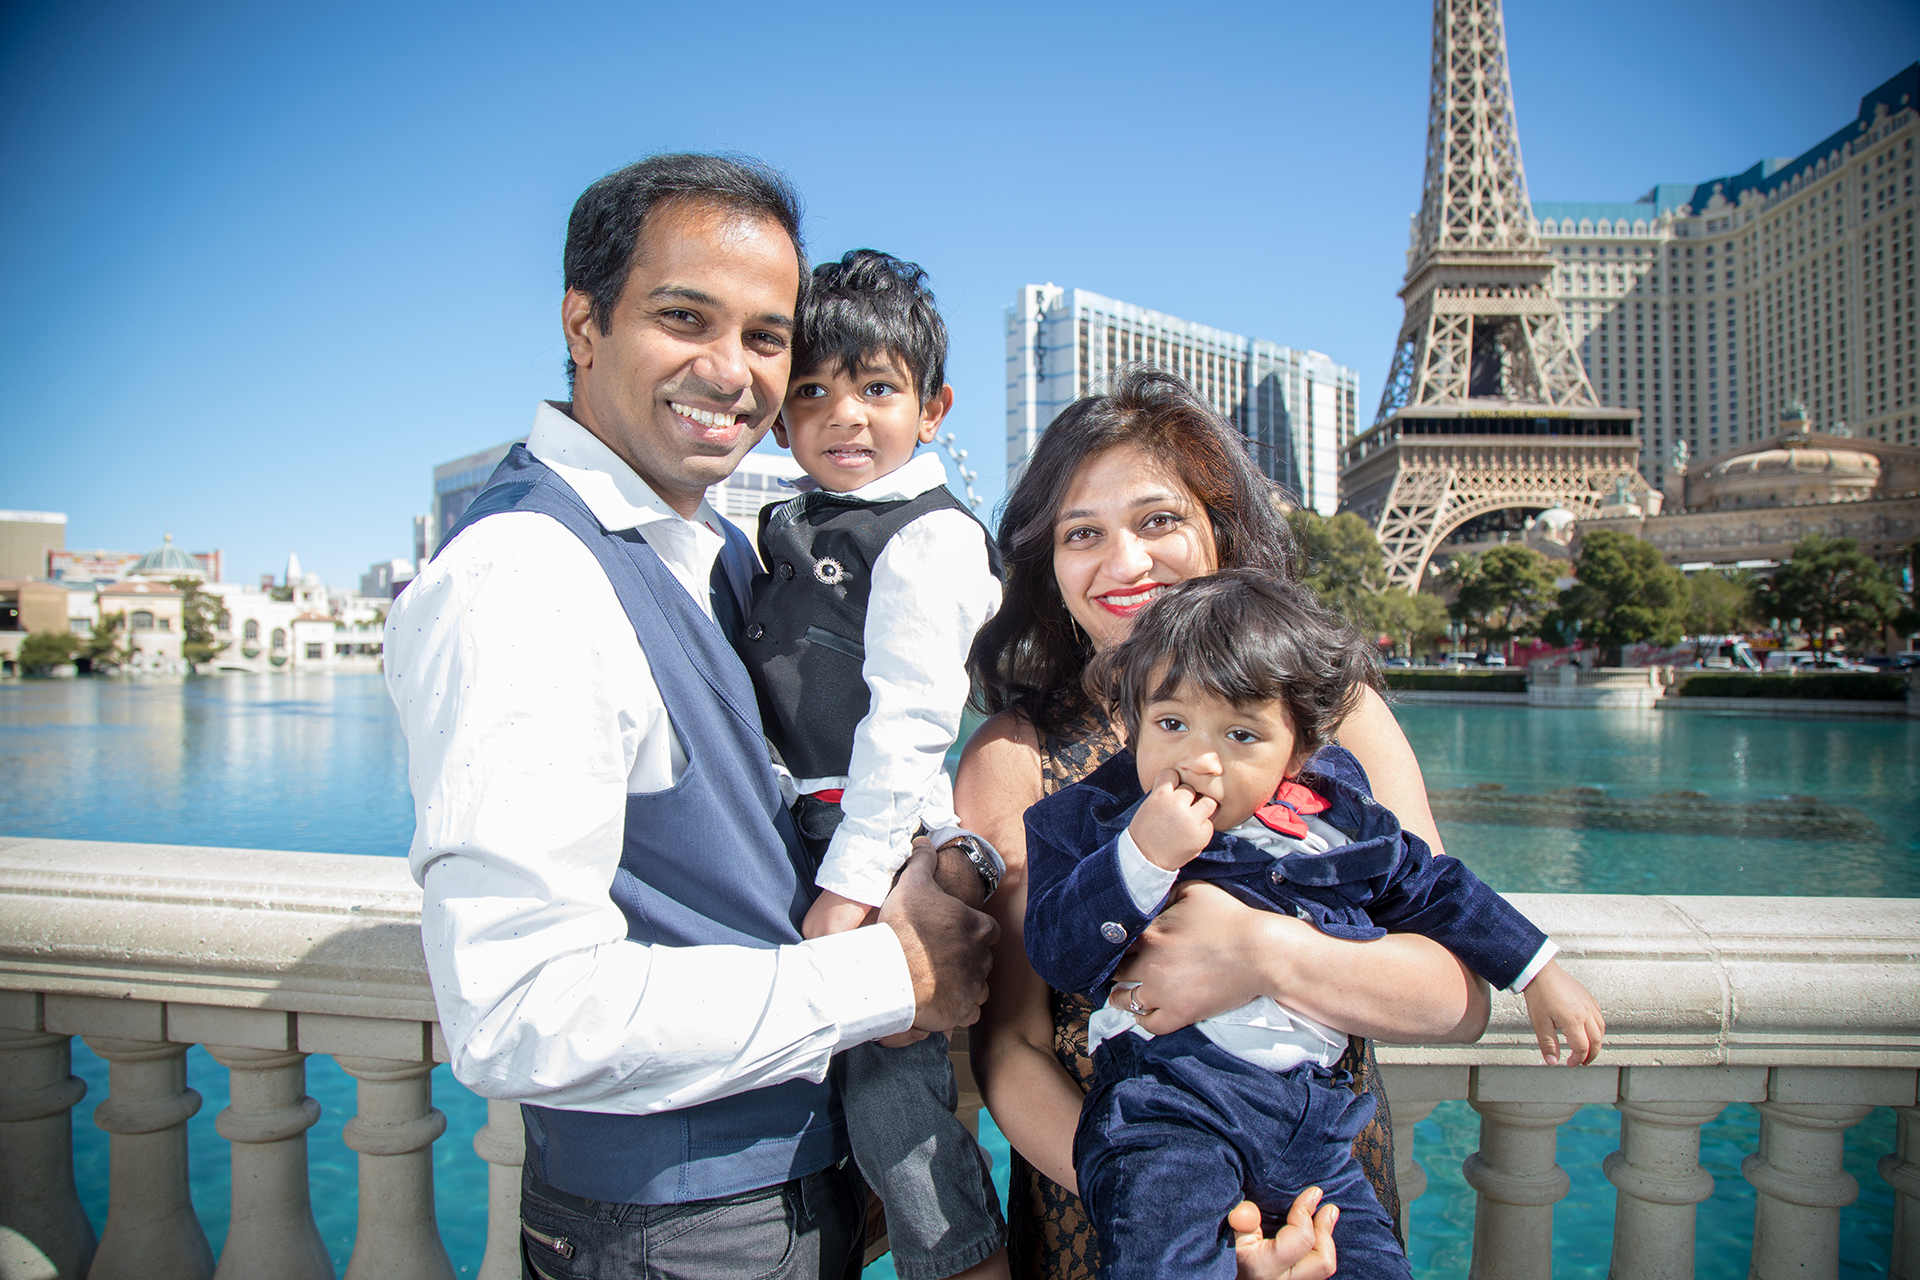 Las Vegas Paris Portrait Photographer